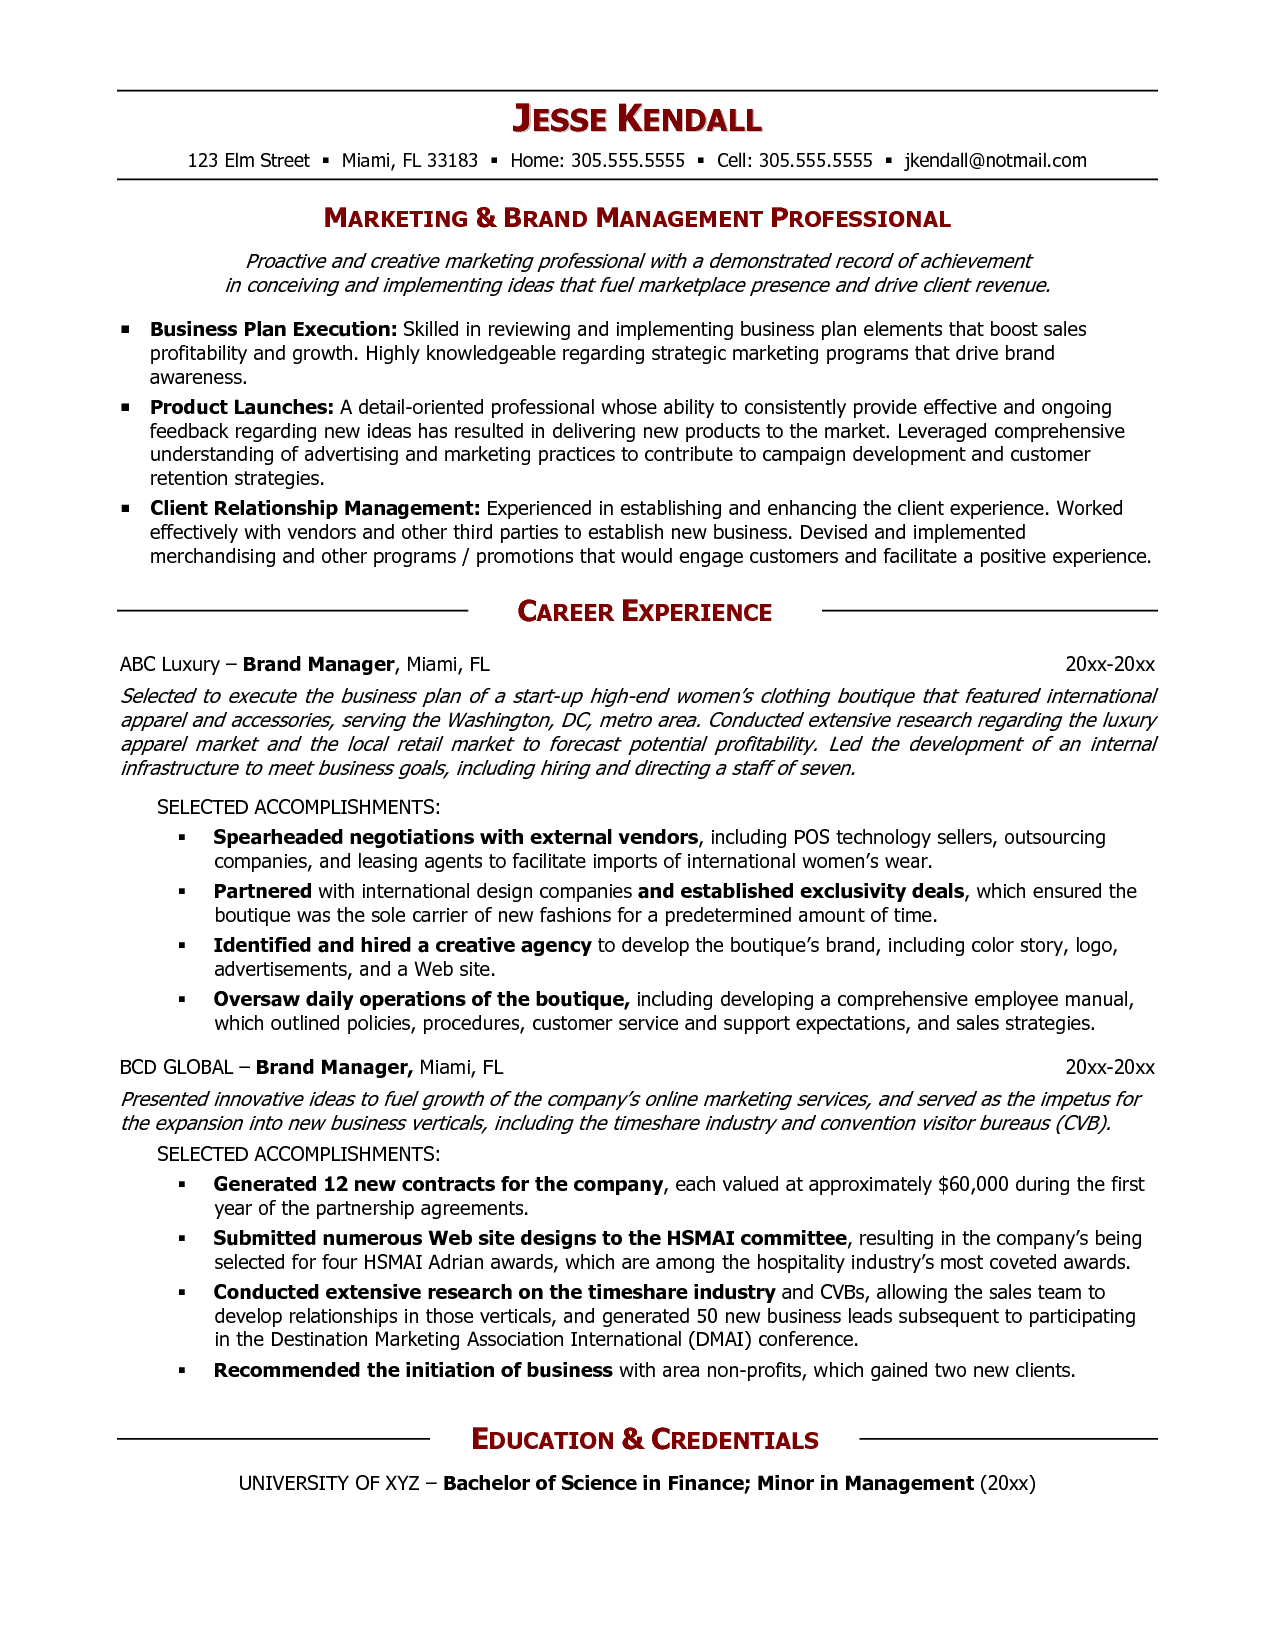 senior logistic management resume brand manager resume example senior logistic management resume brand manager resume example